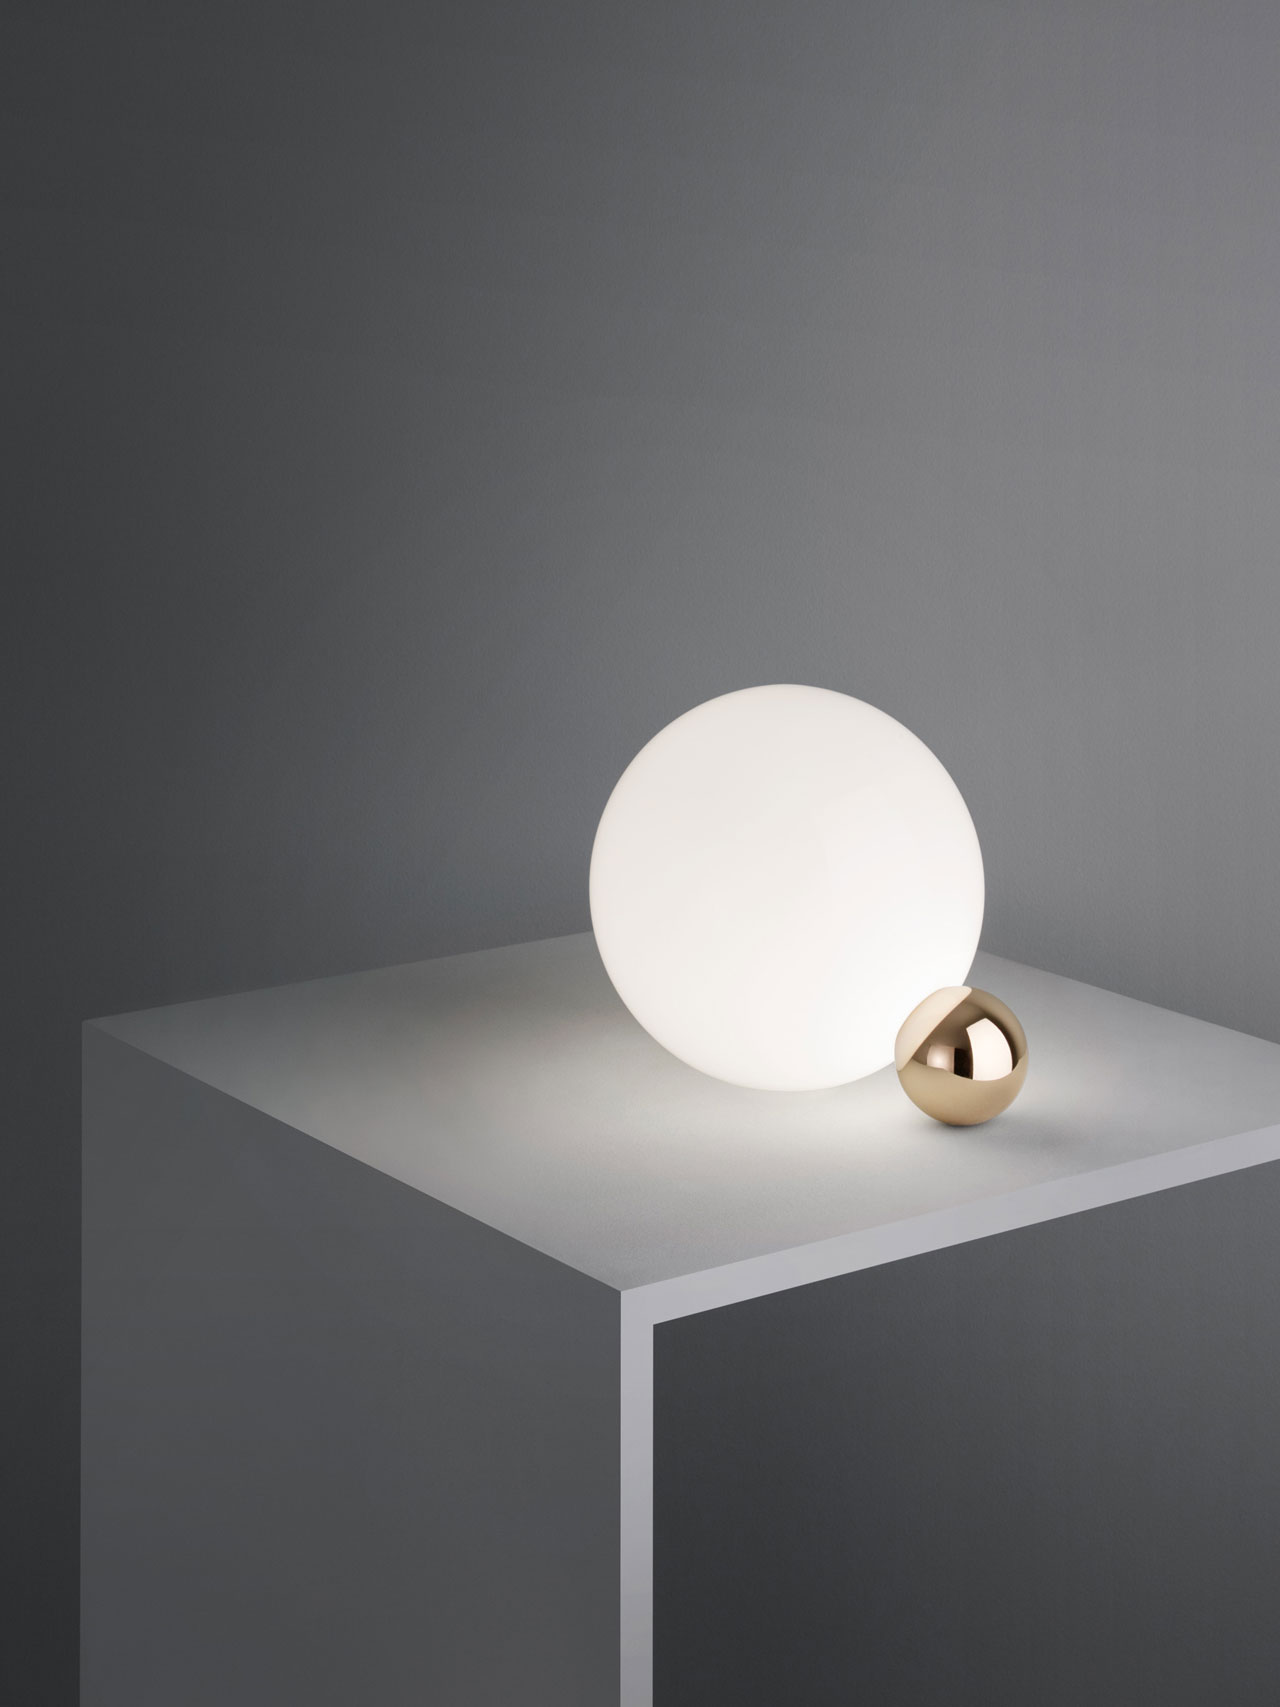 COPYCAT table lamp by MichaelAnastassiades for FLOS. Photo© FrankHuelsboemer.